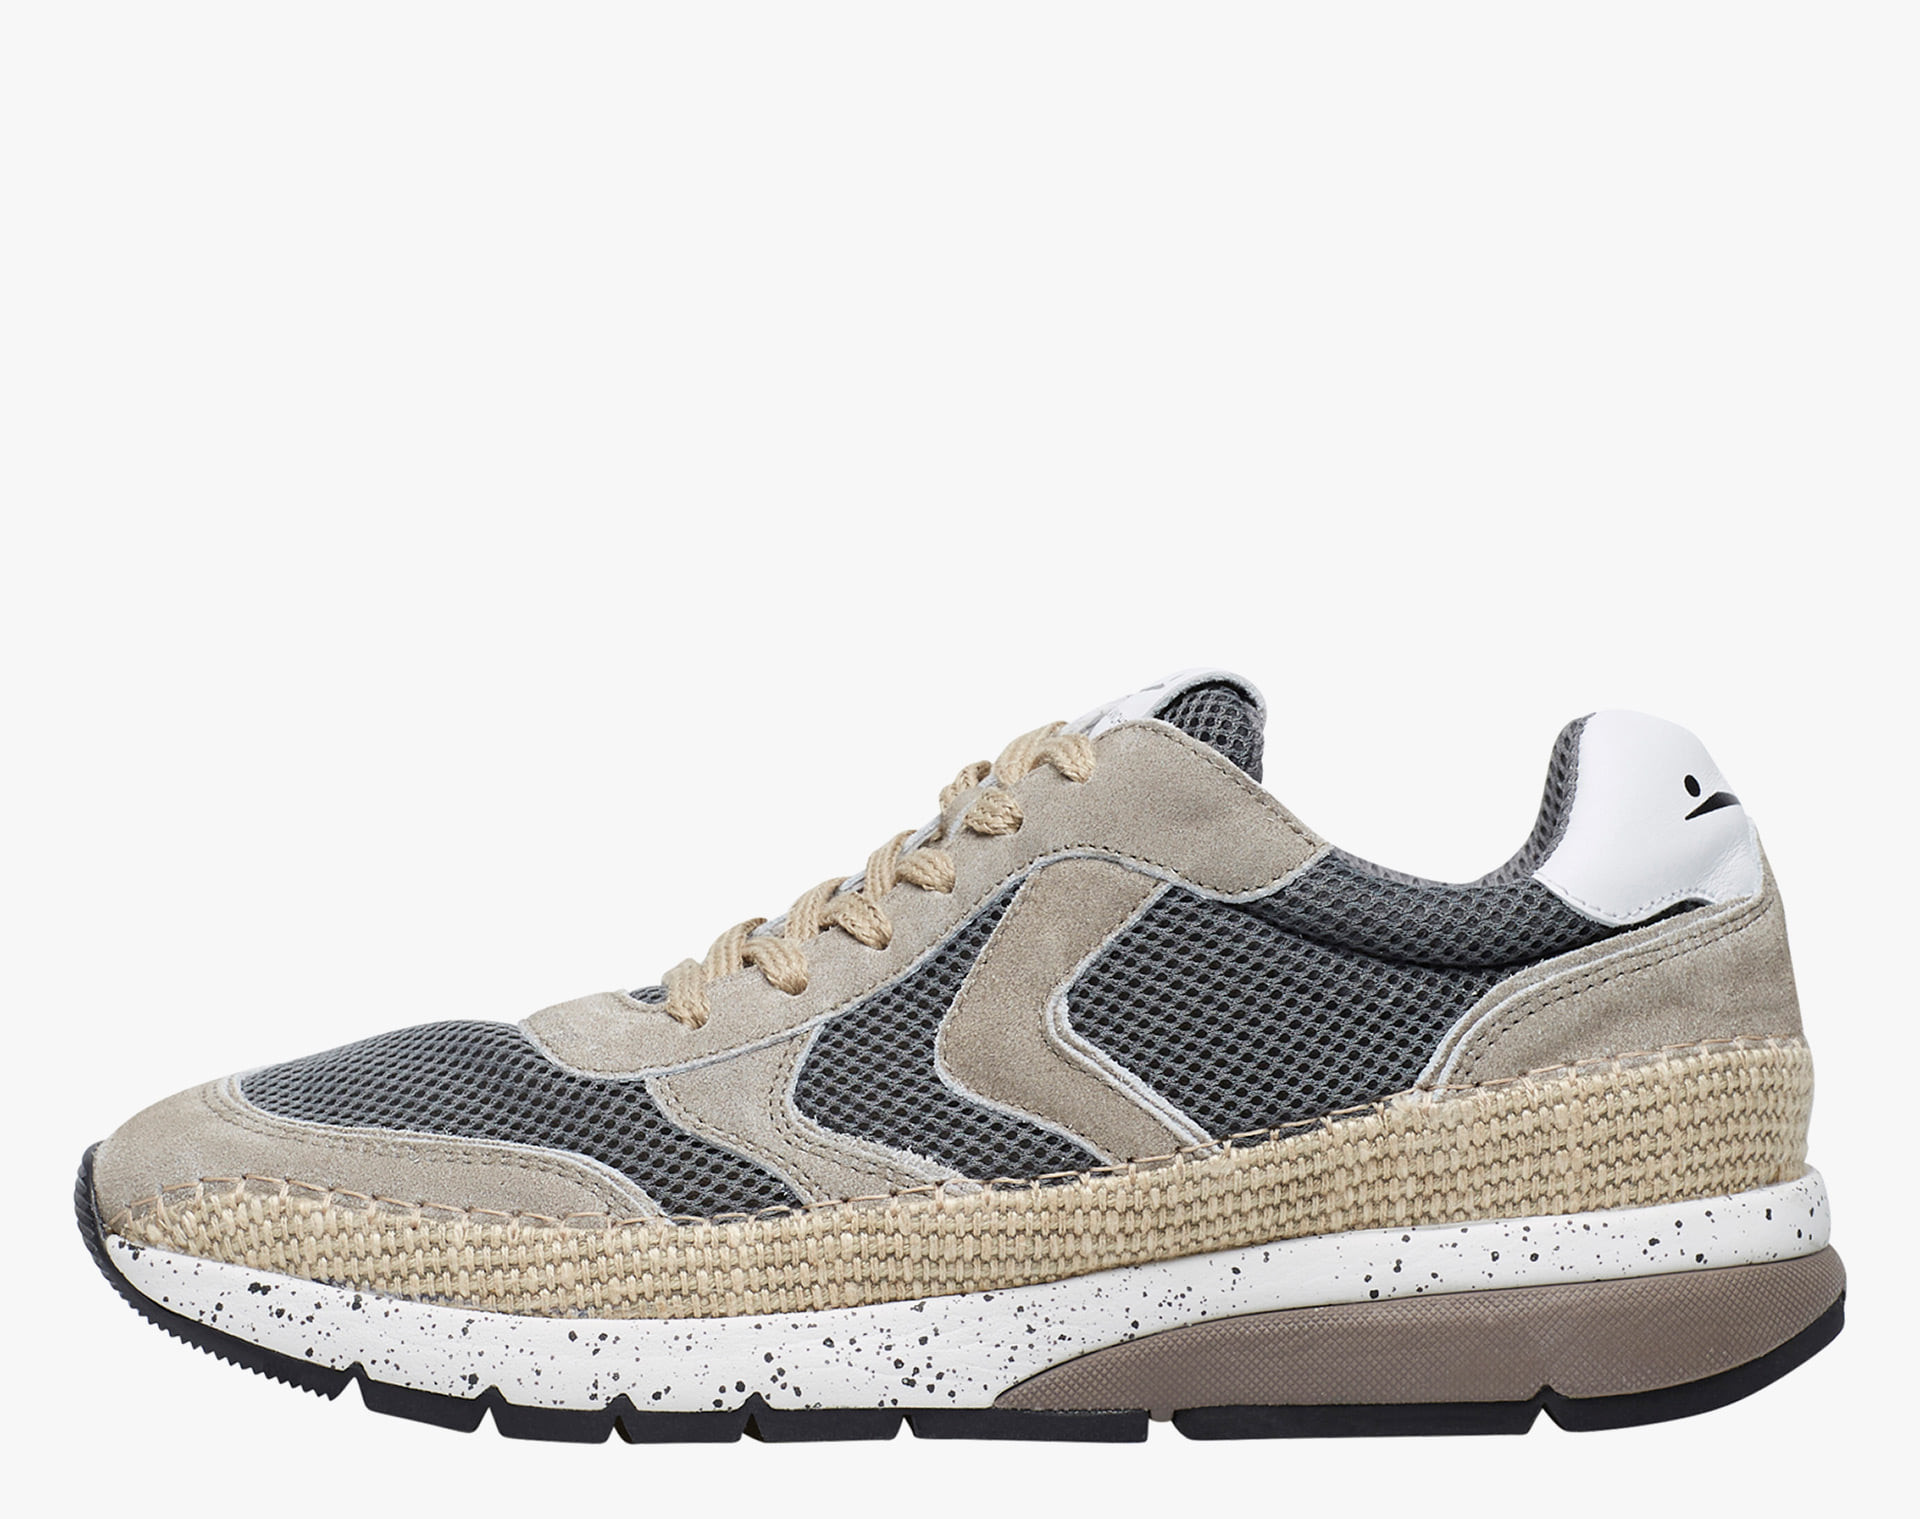 DAVE - Suede and jute sneakers - Grey